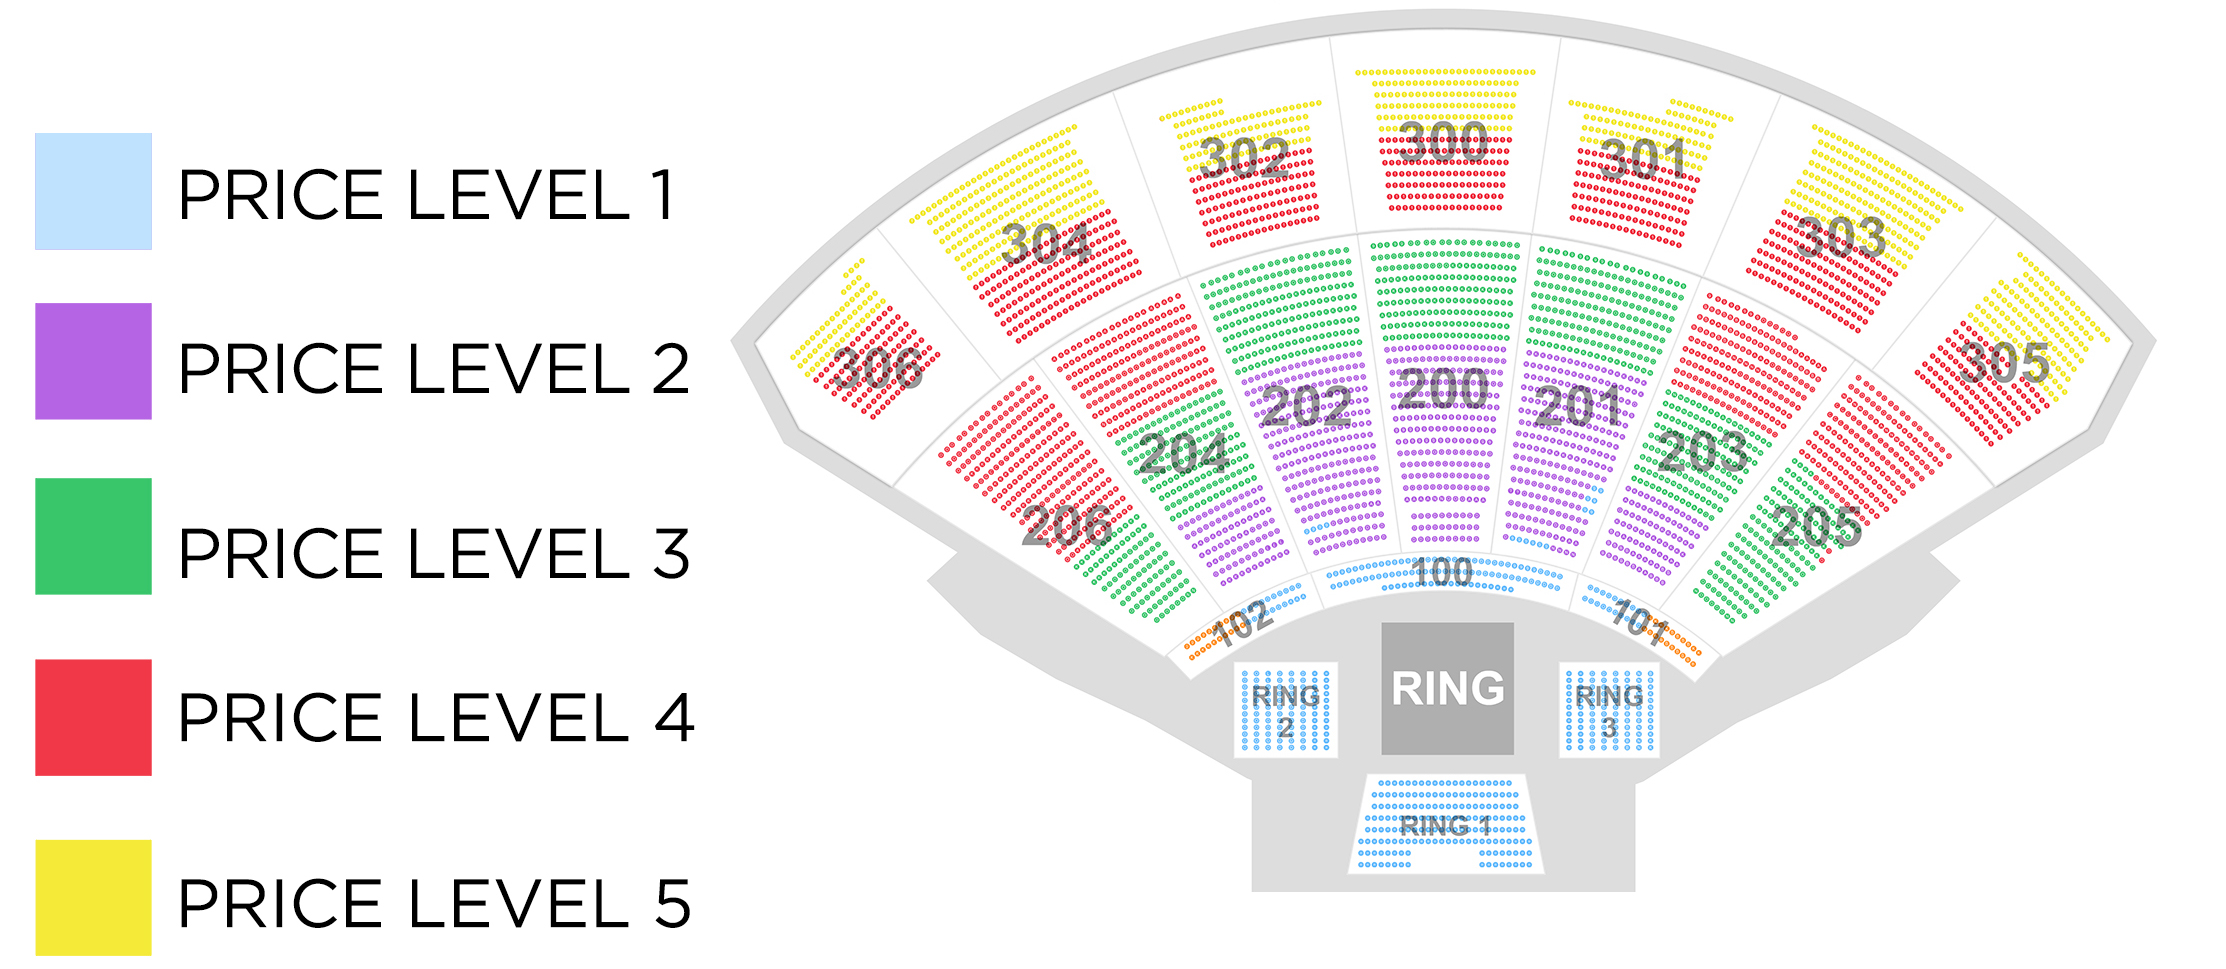 Madison Square Garden Seating Chart 1482275511 Seating Mma Nyc Tickets  World Series Of Fighting 1487789381 Seating Game Of Thrones Tickets Game Of  Thrones ...